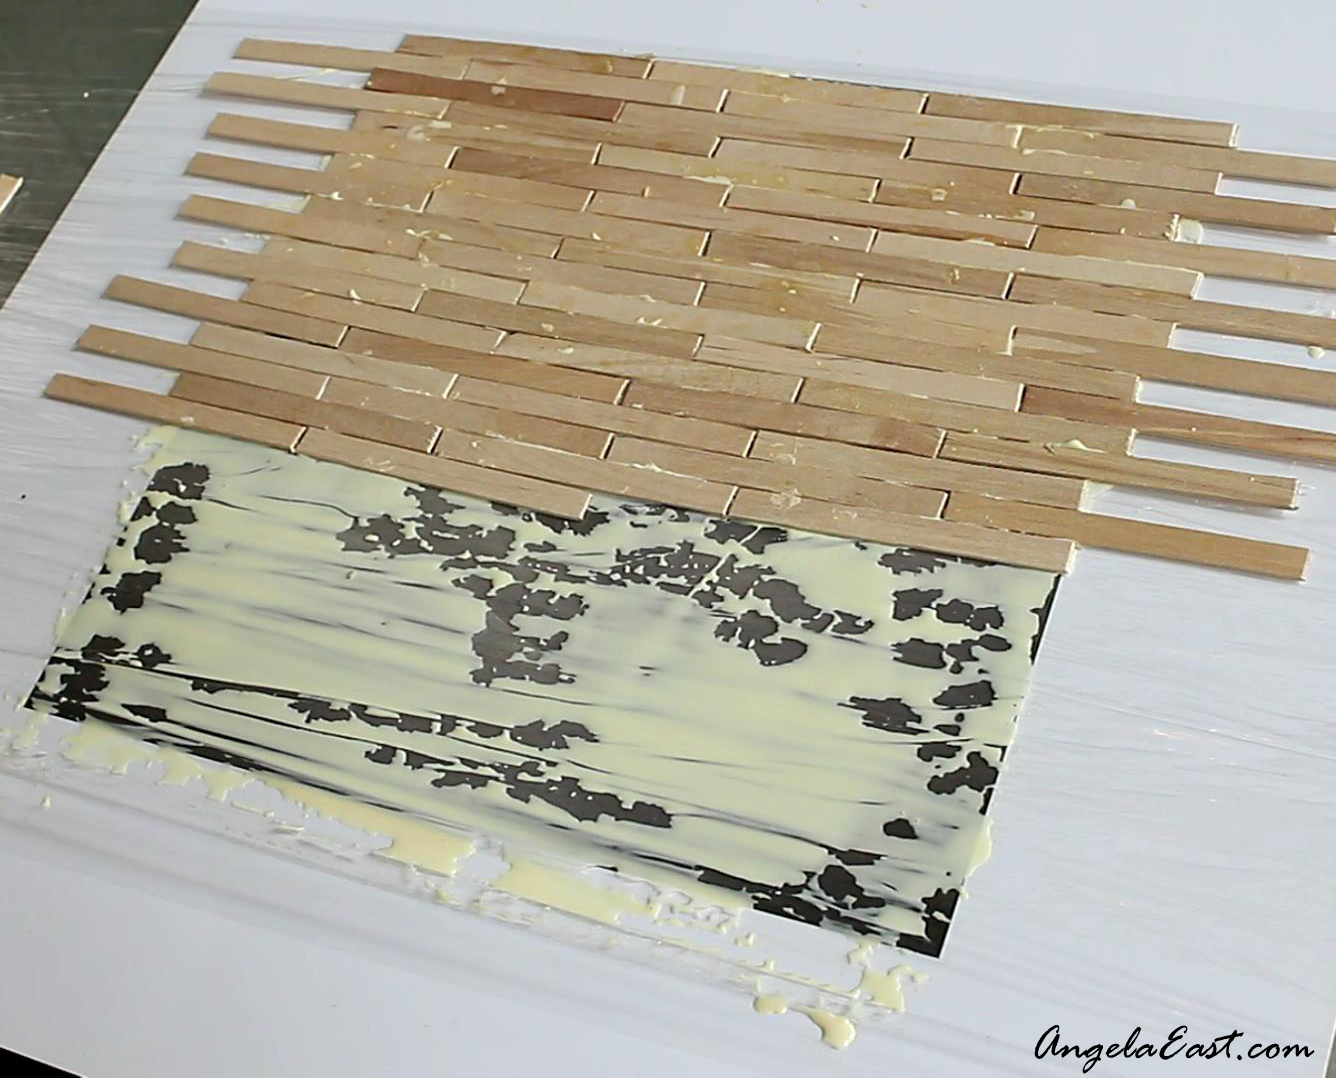 IKEA Hack - DIY Wall Art Transformation #homedecor #dollartree at angelaeast.com